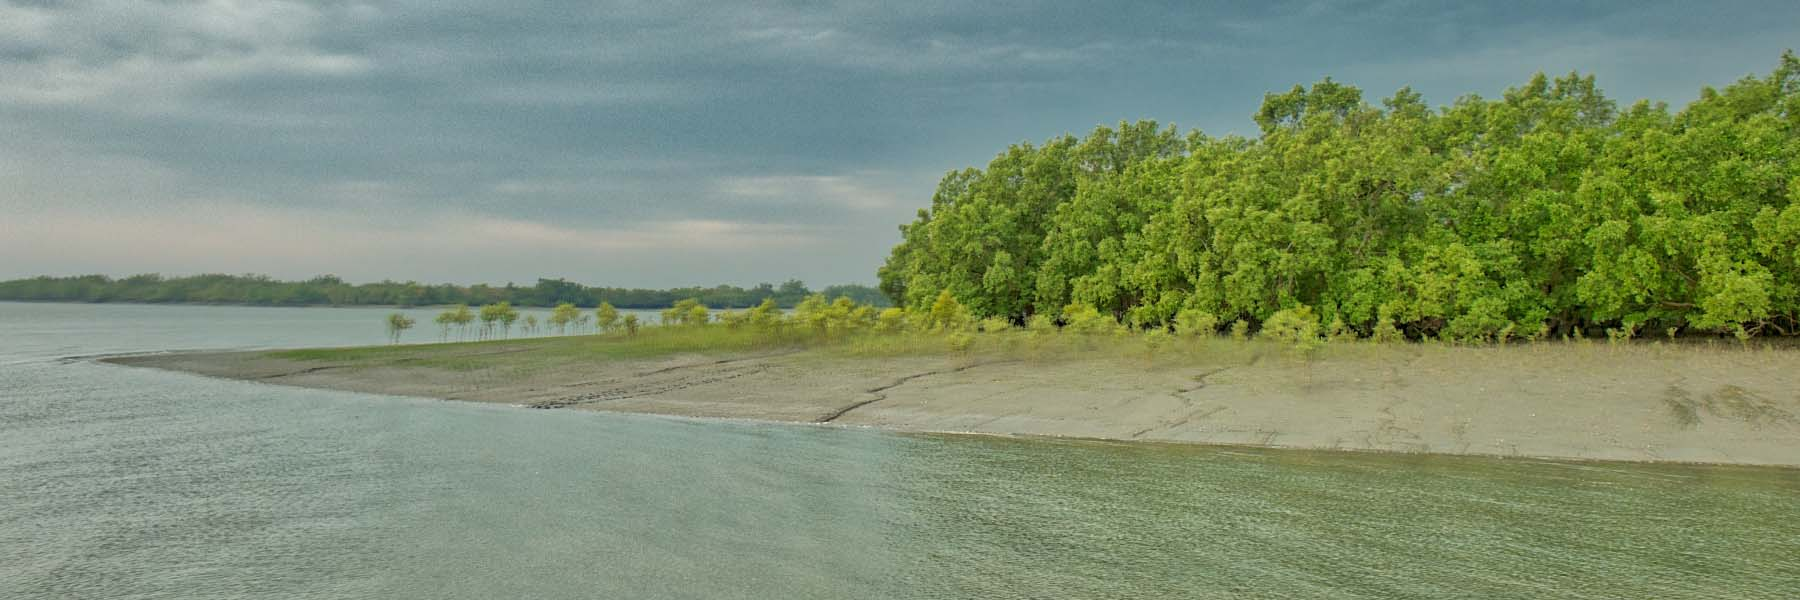 Visit the best Mangrove forests in the world